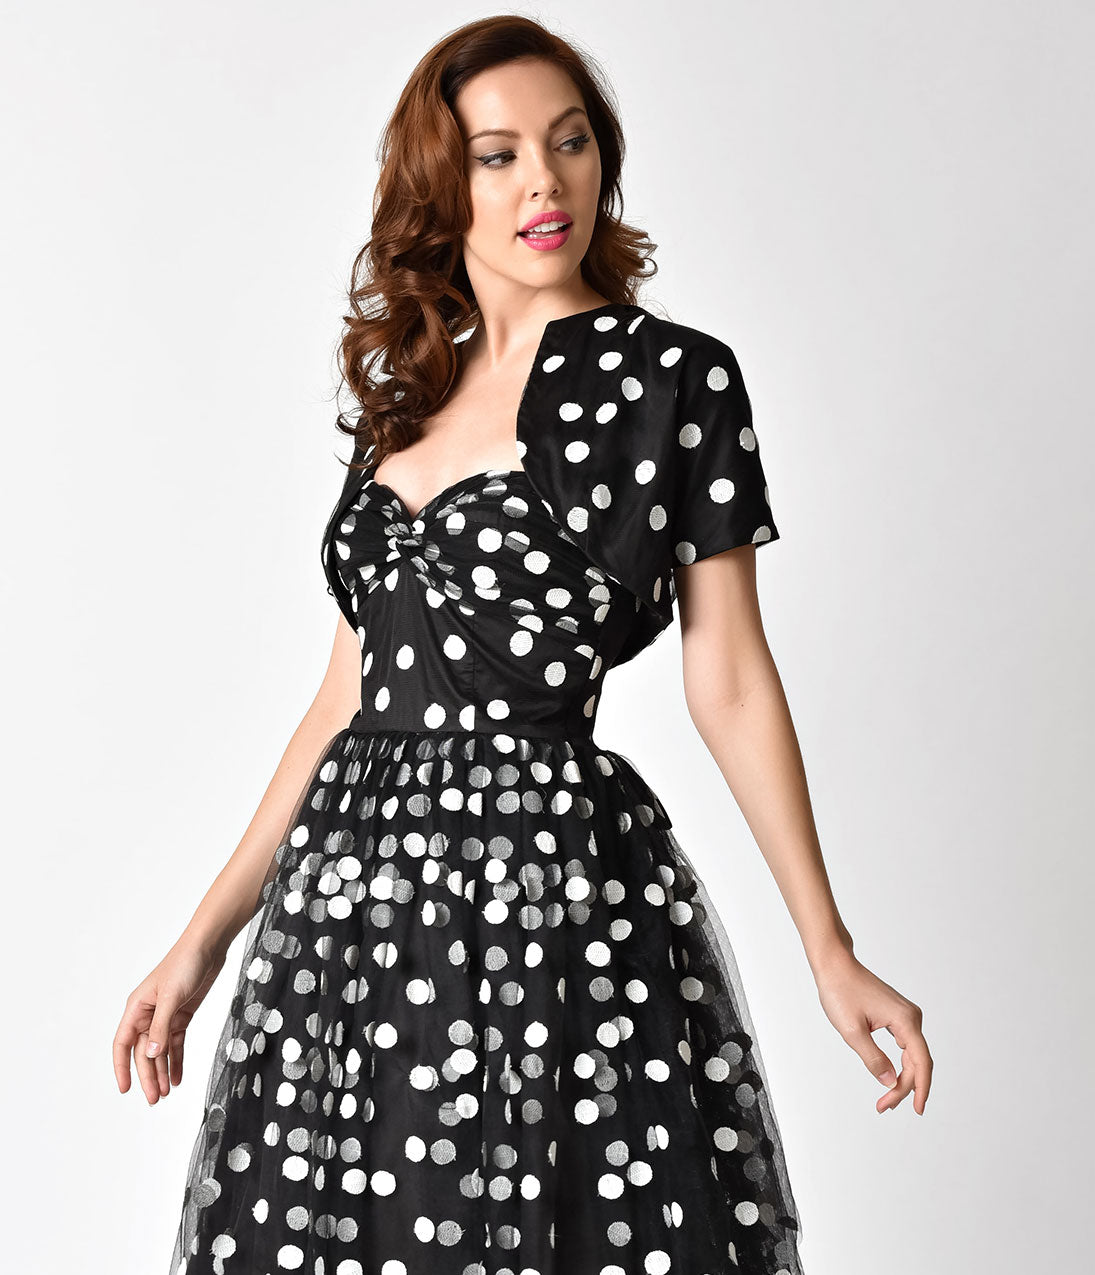 1950s Jackets and Coats | Swing, Pin Up, Rockabilly Janie Bryant For Unique Vintage Black  White Dot Gertie Bolero $20.00 AT vintagedancer.com